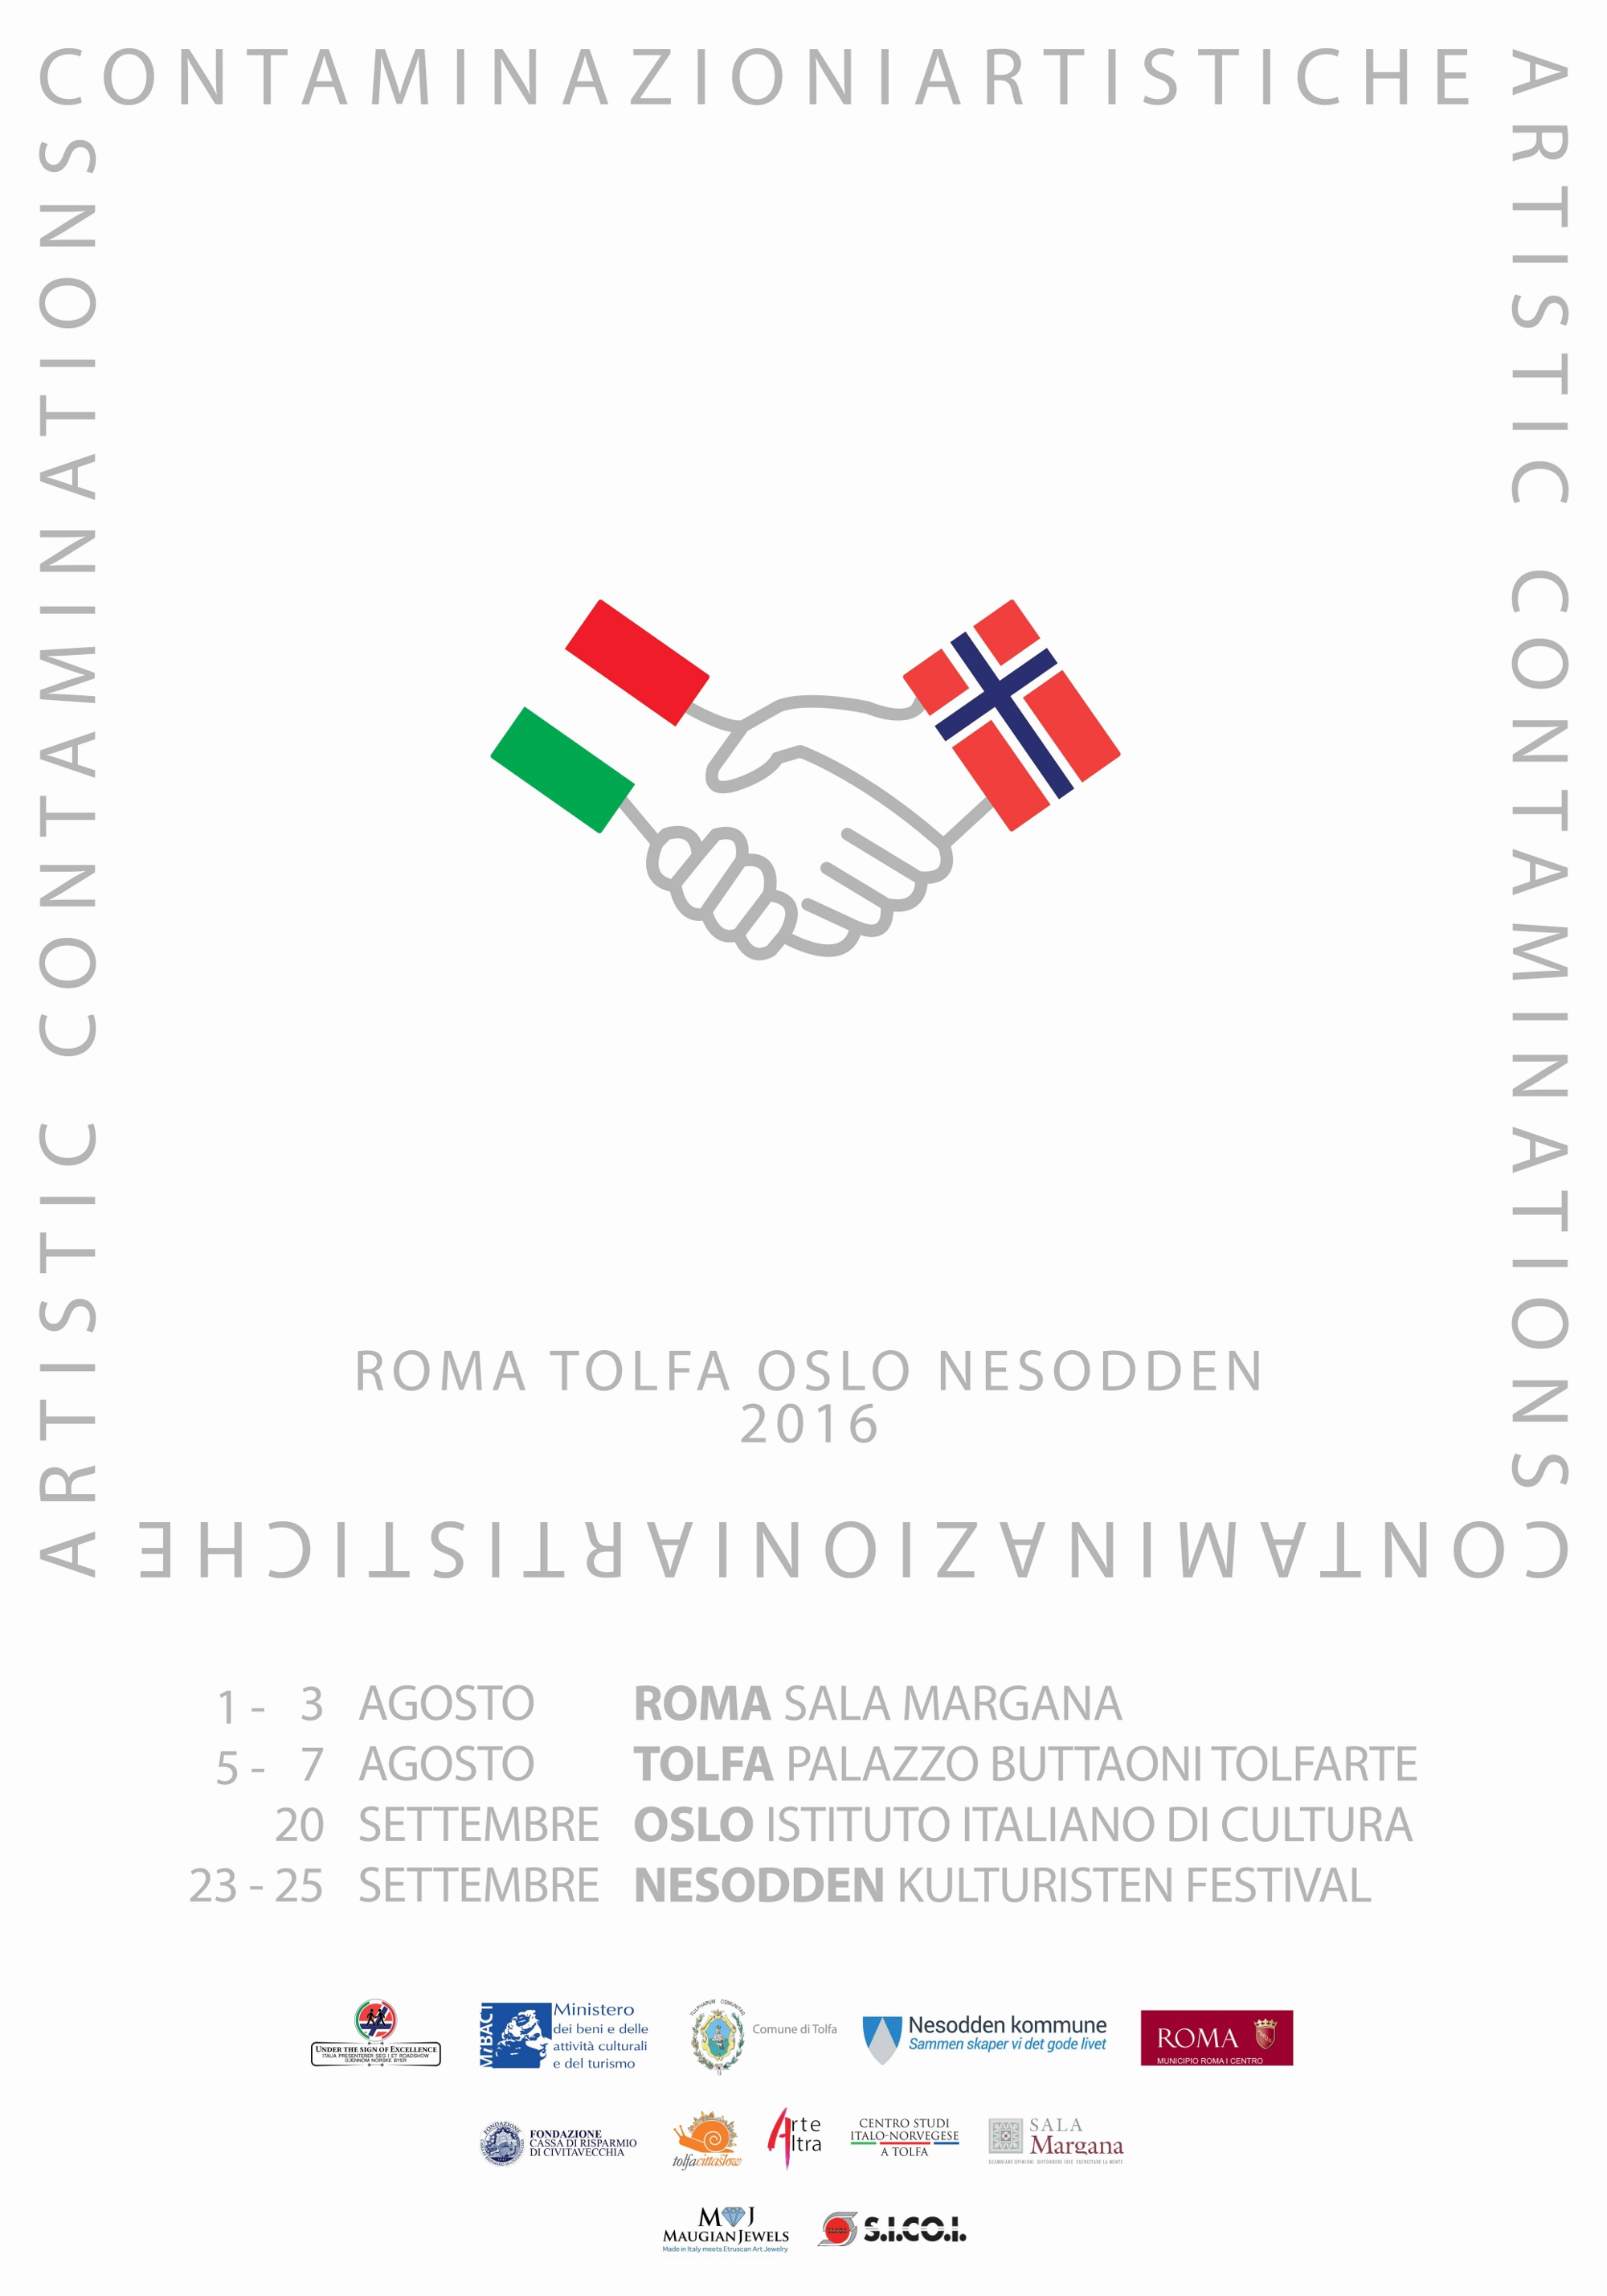 poster for exhibition 'Contaminazioni artistiche – Artistic Contamination'. Opening on 1 August, at 6:30 pm. In Piazza Margana 41, in Rome.